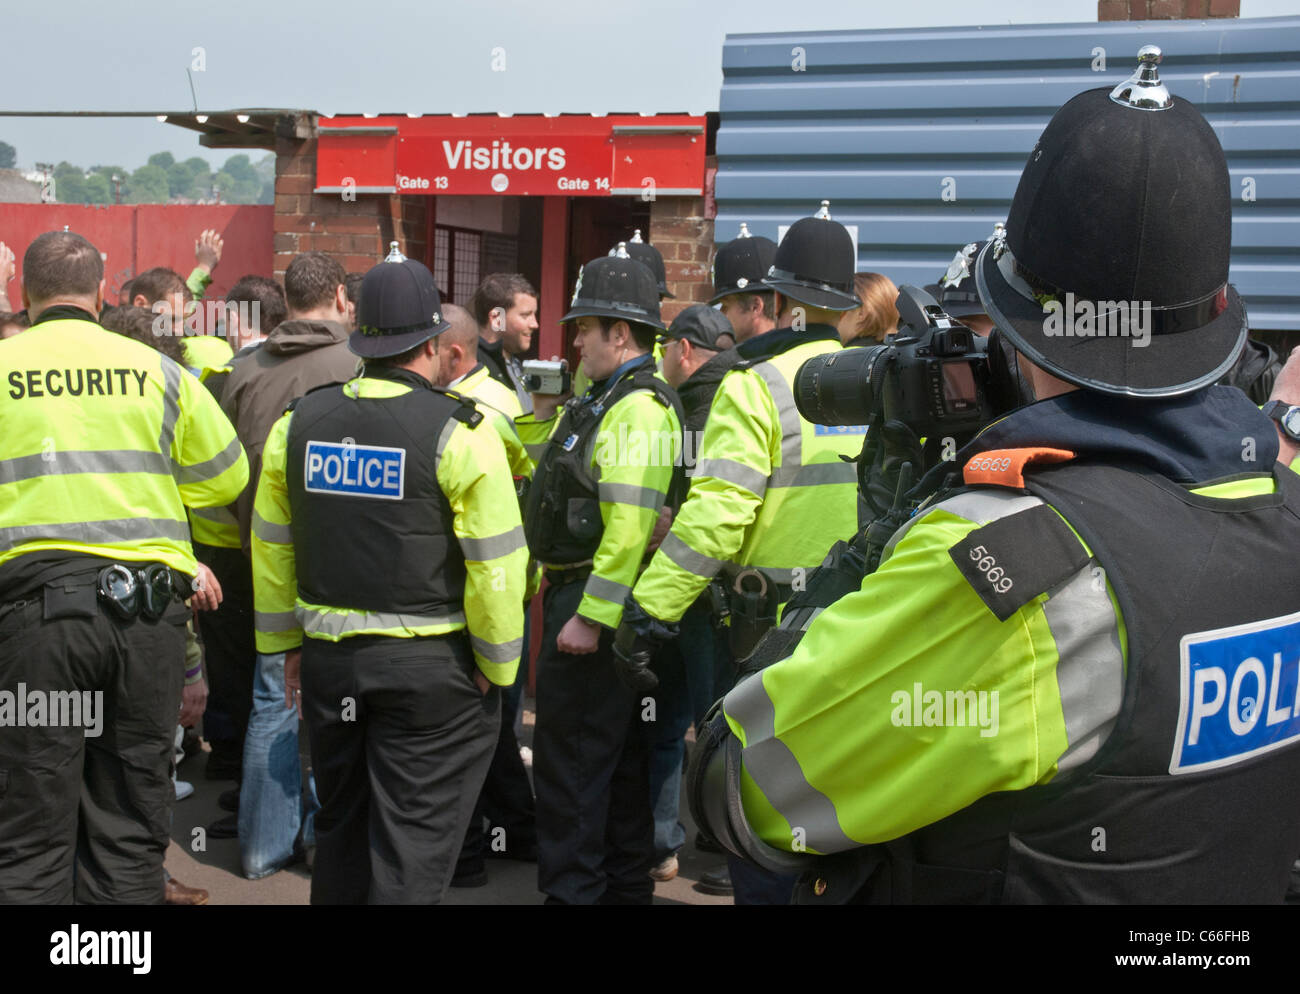 The operation by Devon and Cornwall Police to prevent